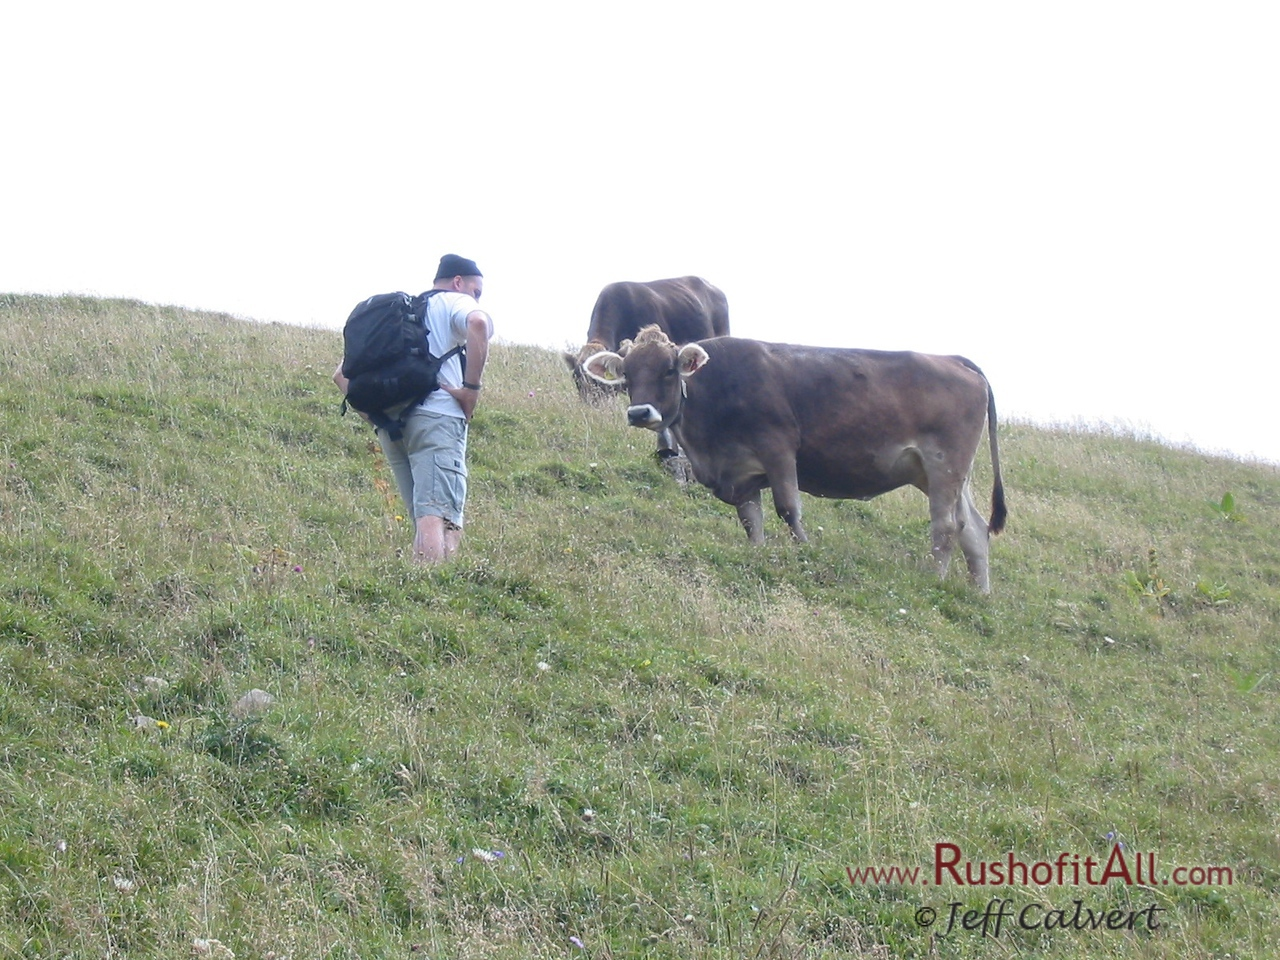 Keith and the cows at Zipfelsalpe.